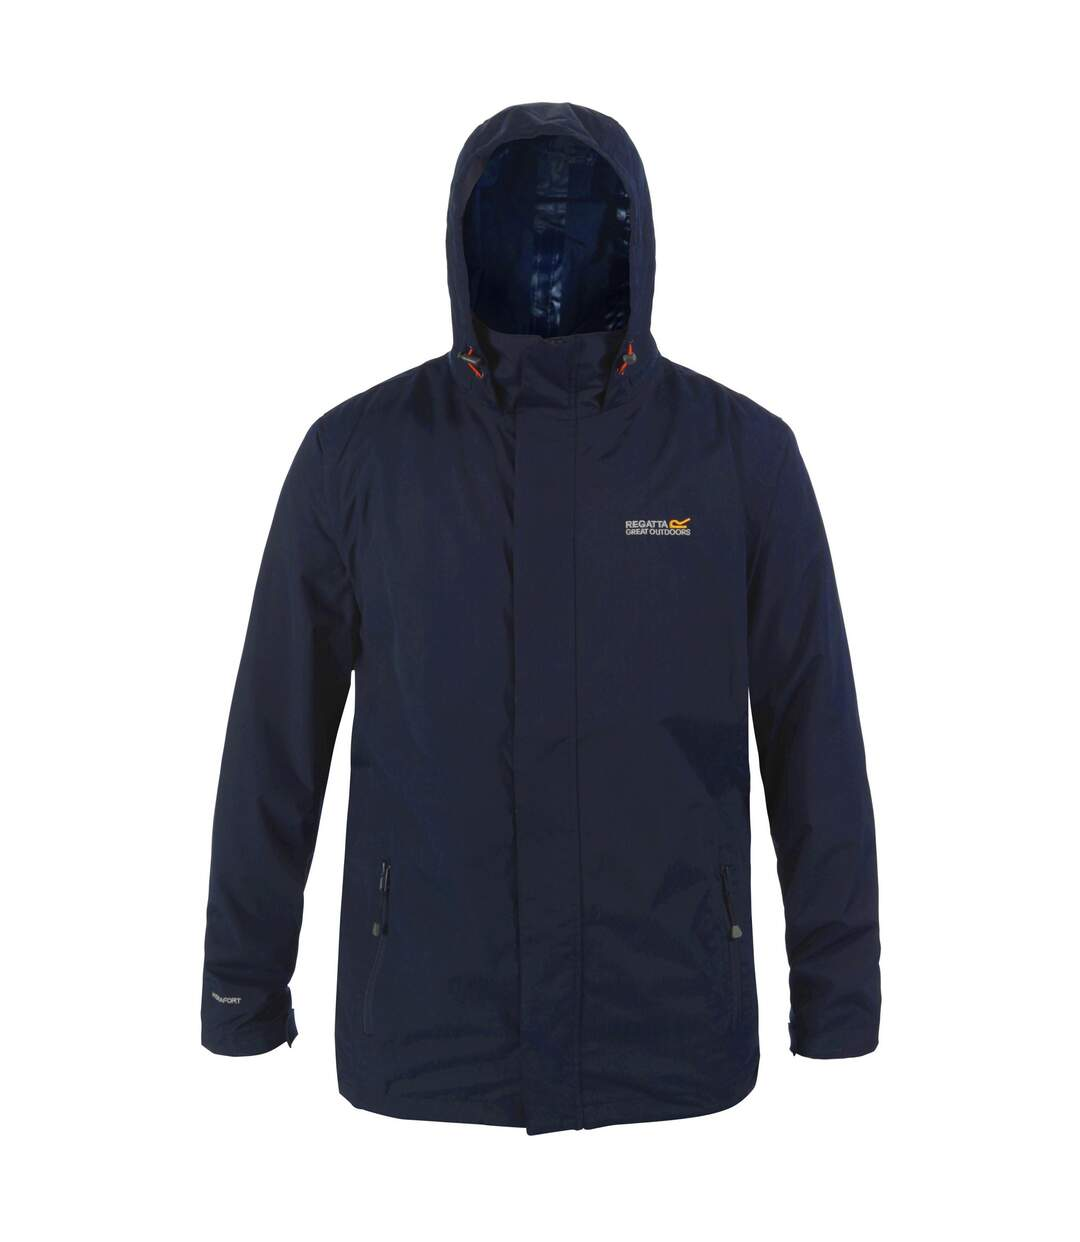 Regatta Great Outdoors Mens Outdoor Classic Matt Hooded Waterproof Jacket (Navy/Navy) - UTRG919